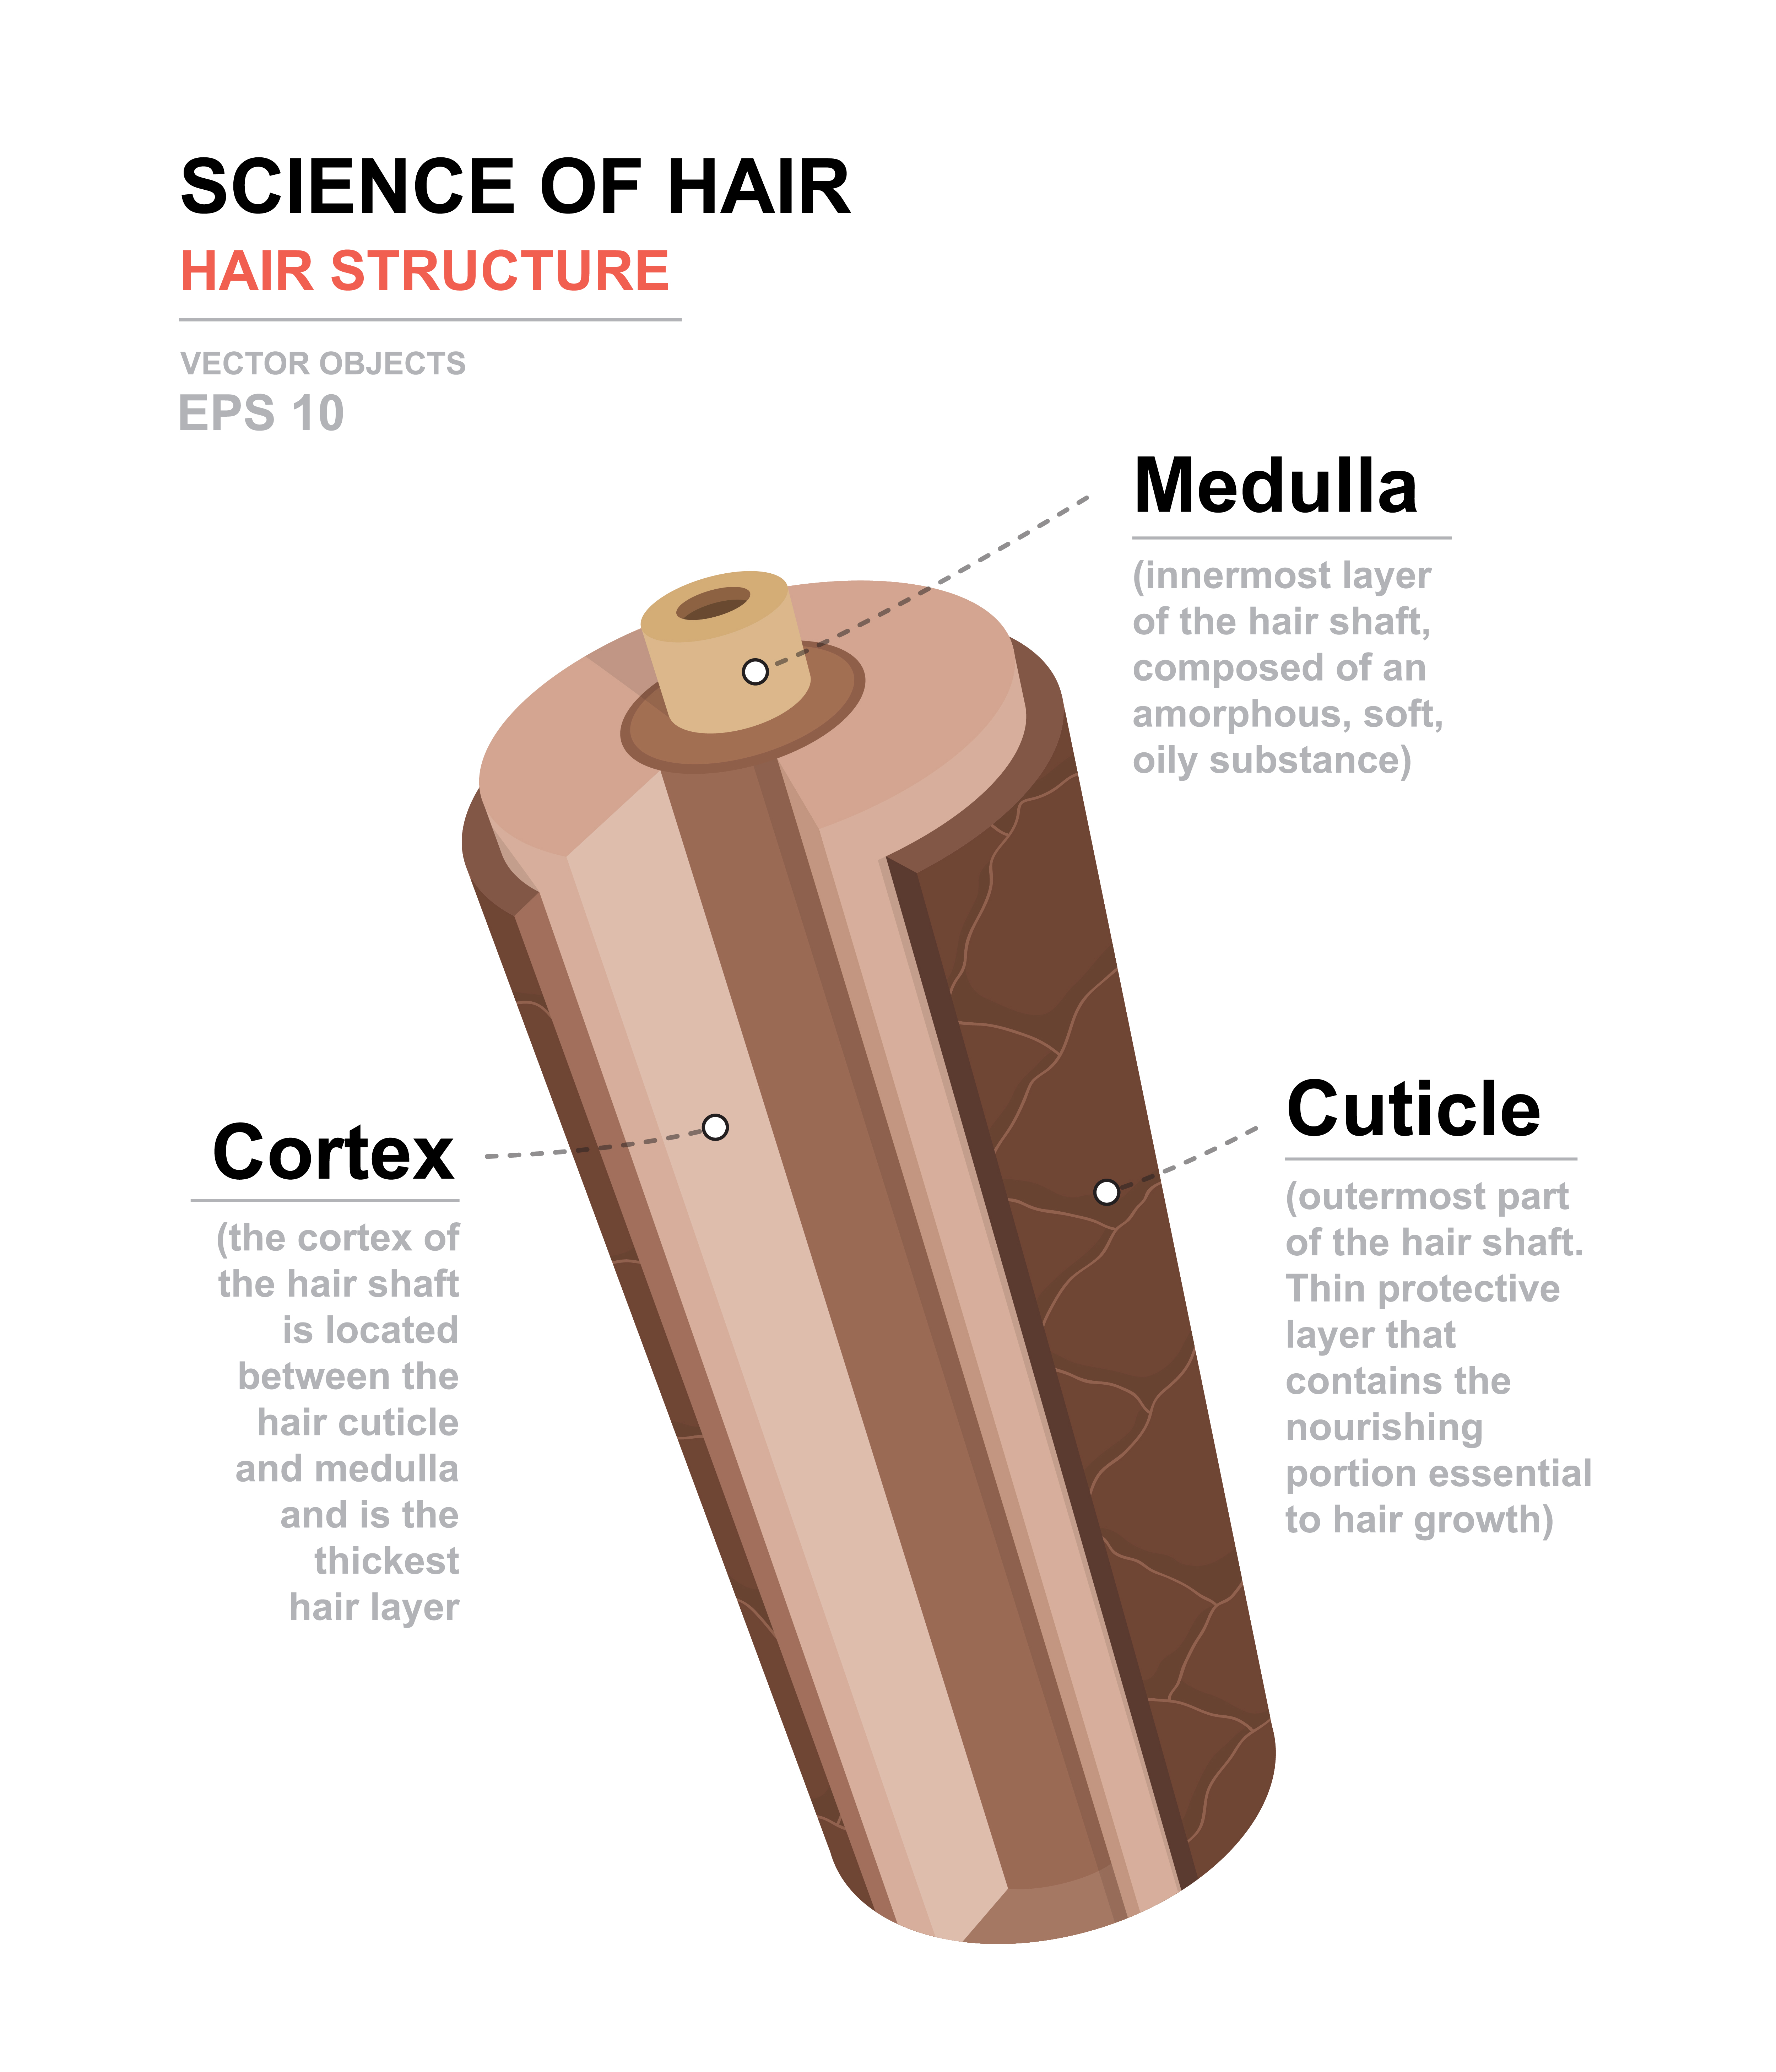 Structure of hairs